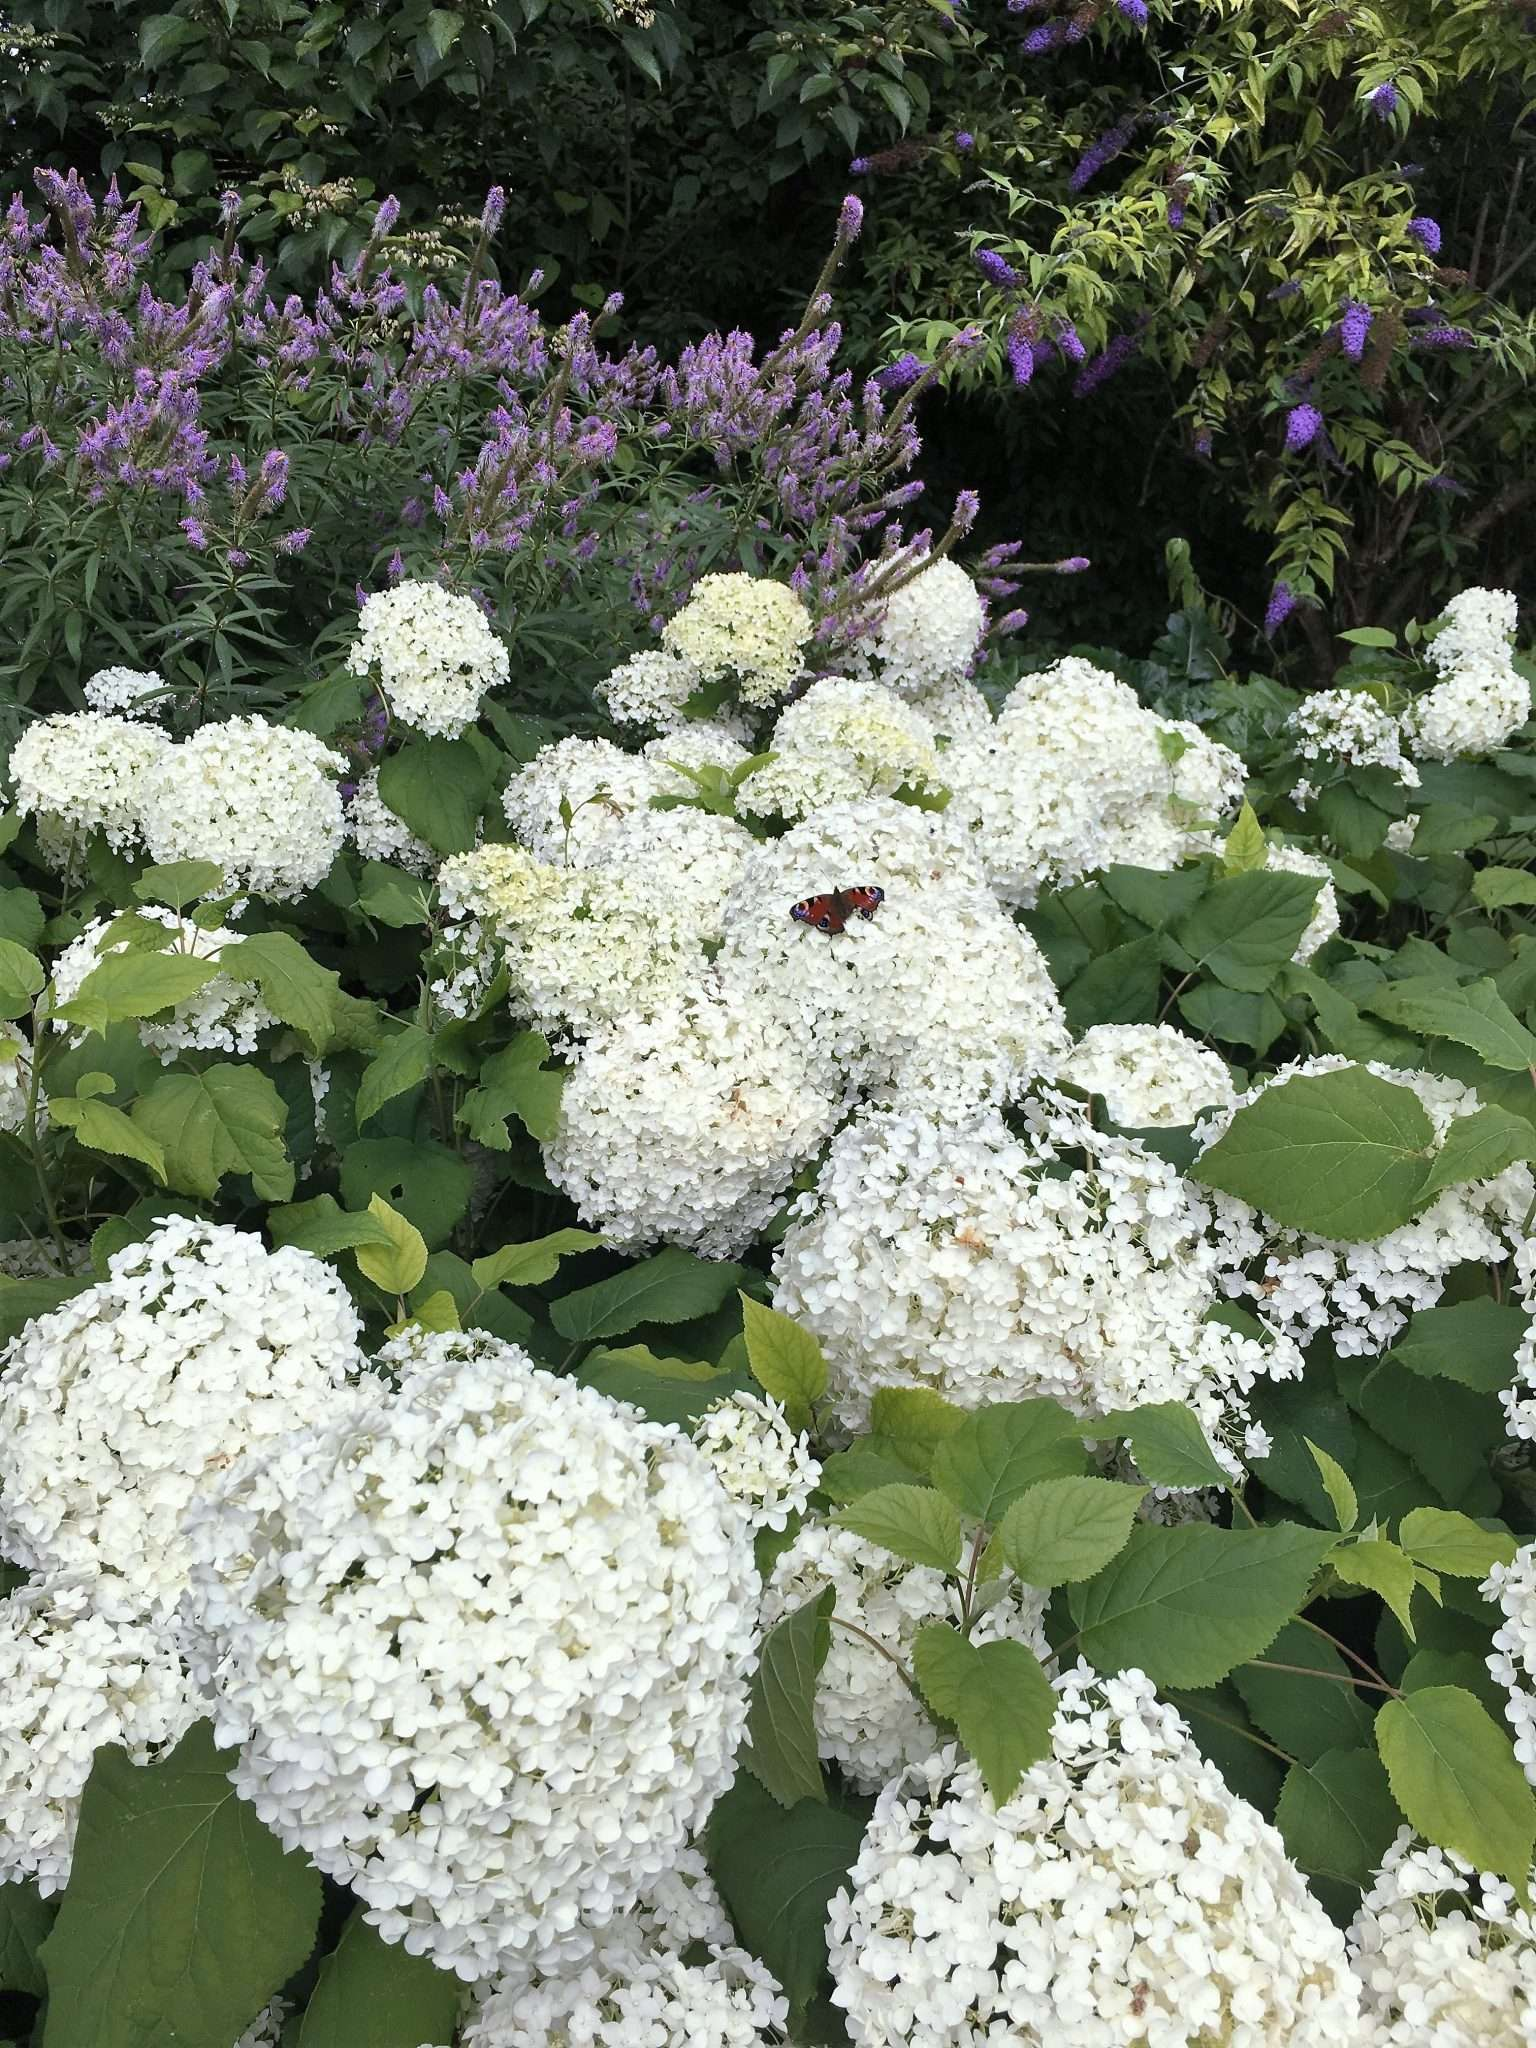 White hydrangea bush in bloom